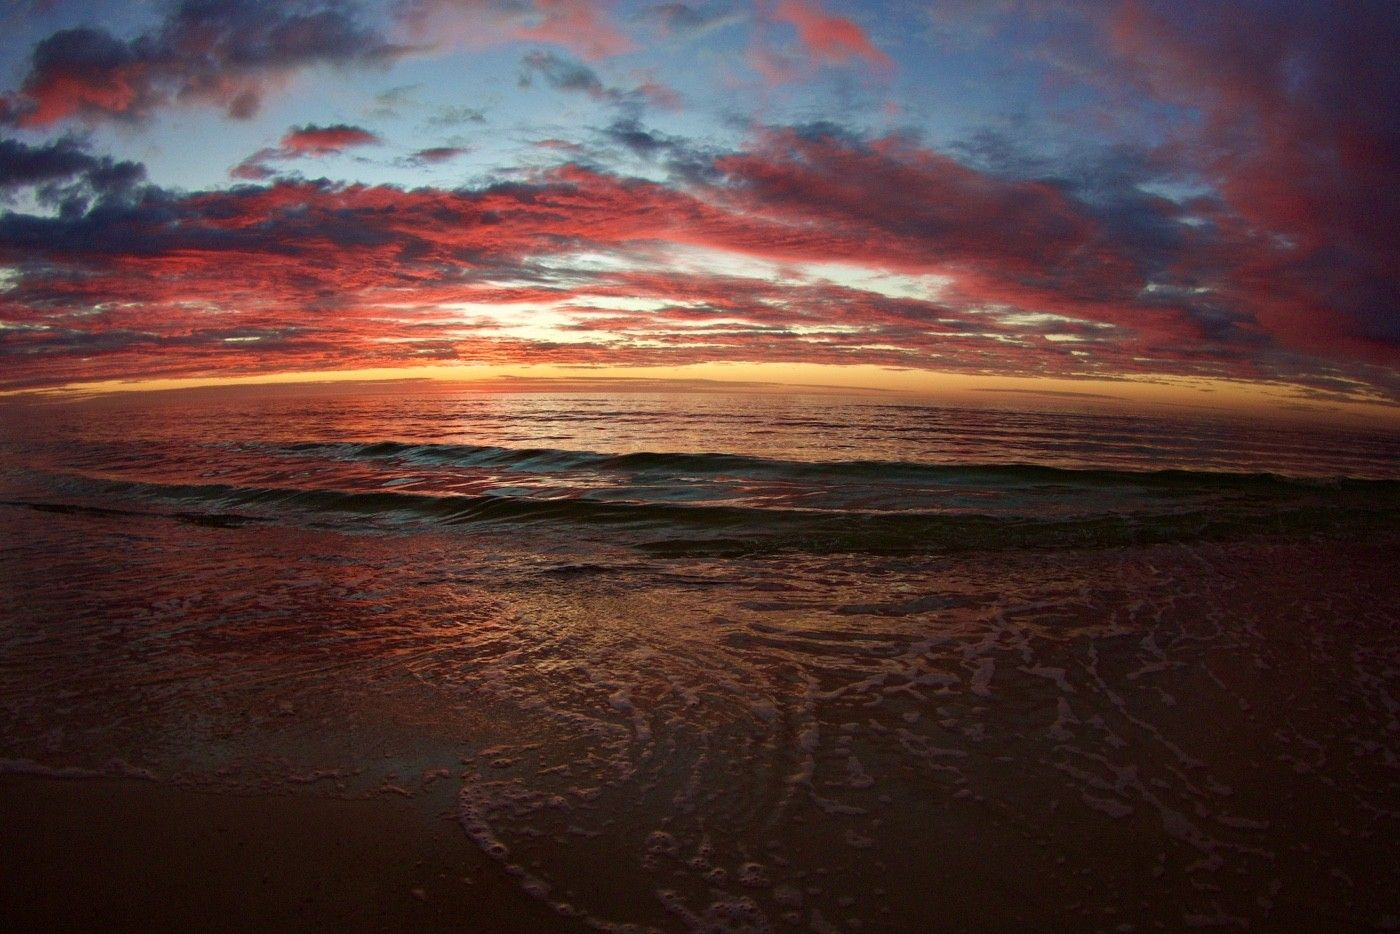 Sun rise over the Gulf of Mexico from St. George Island.